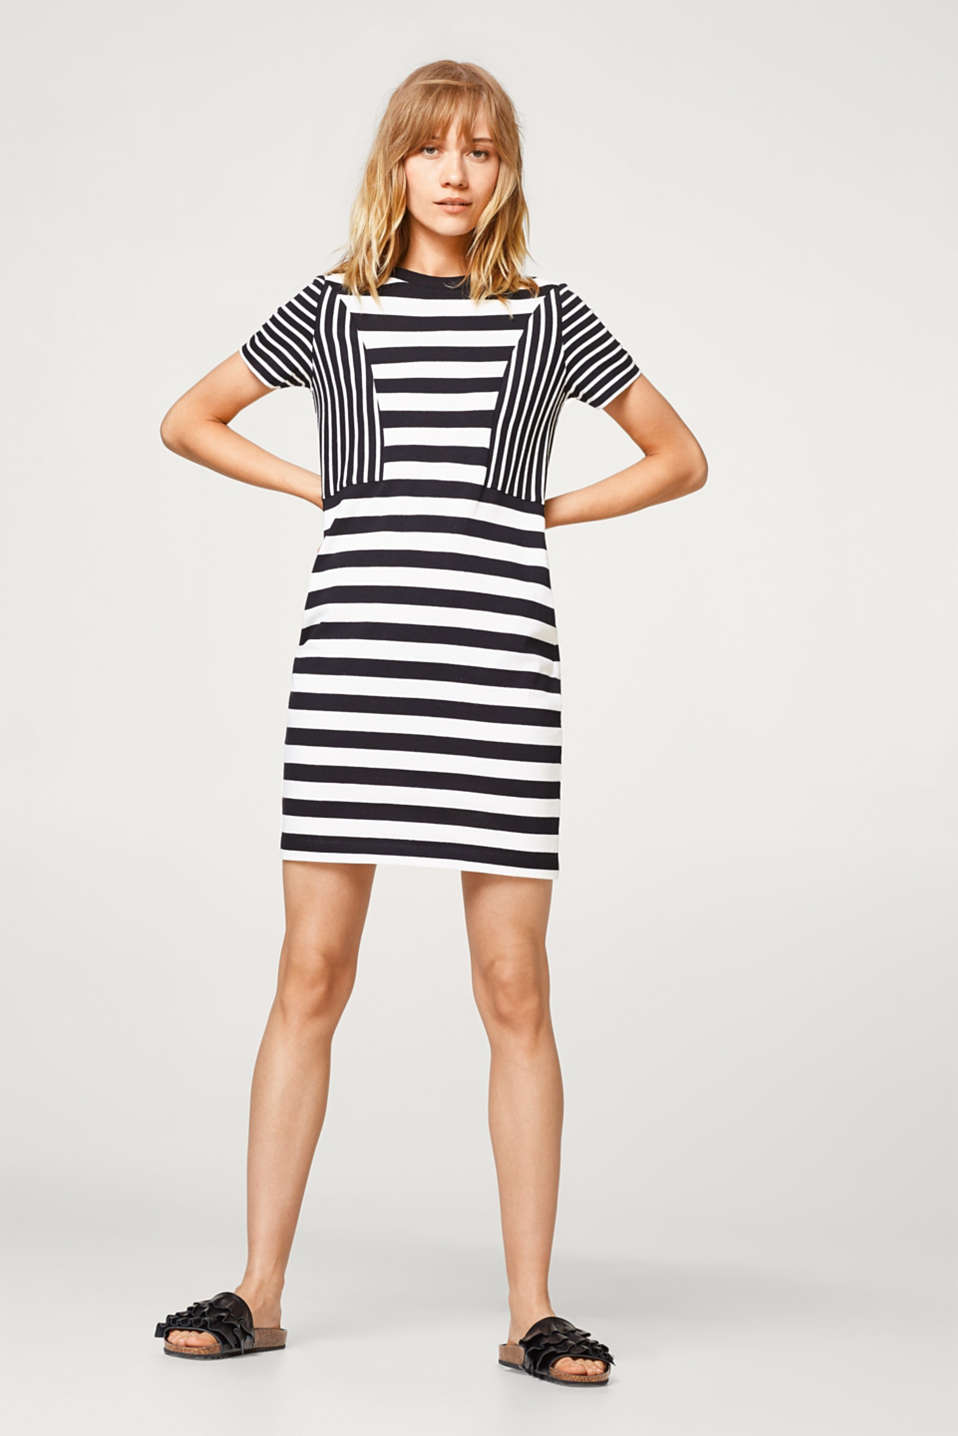 100% cotton knitted dress with fine stripes